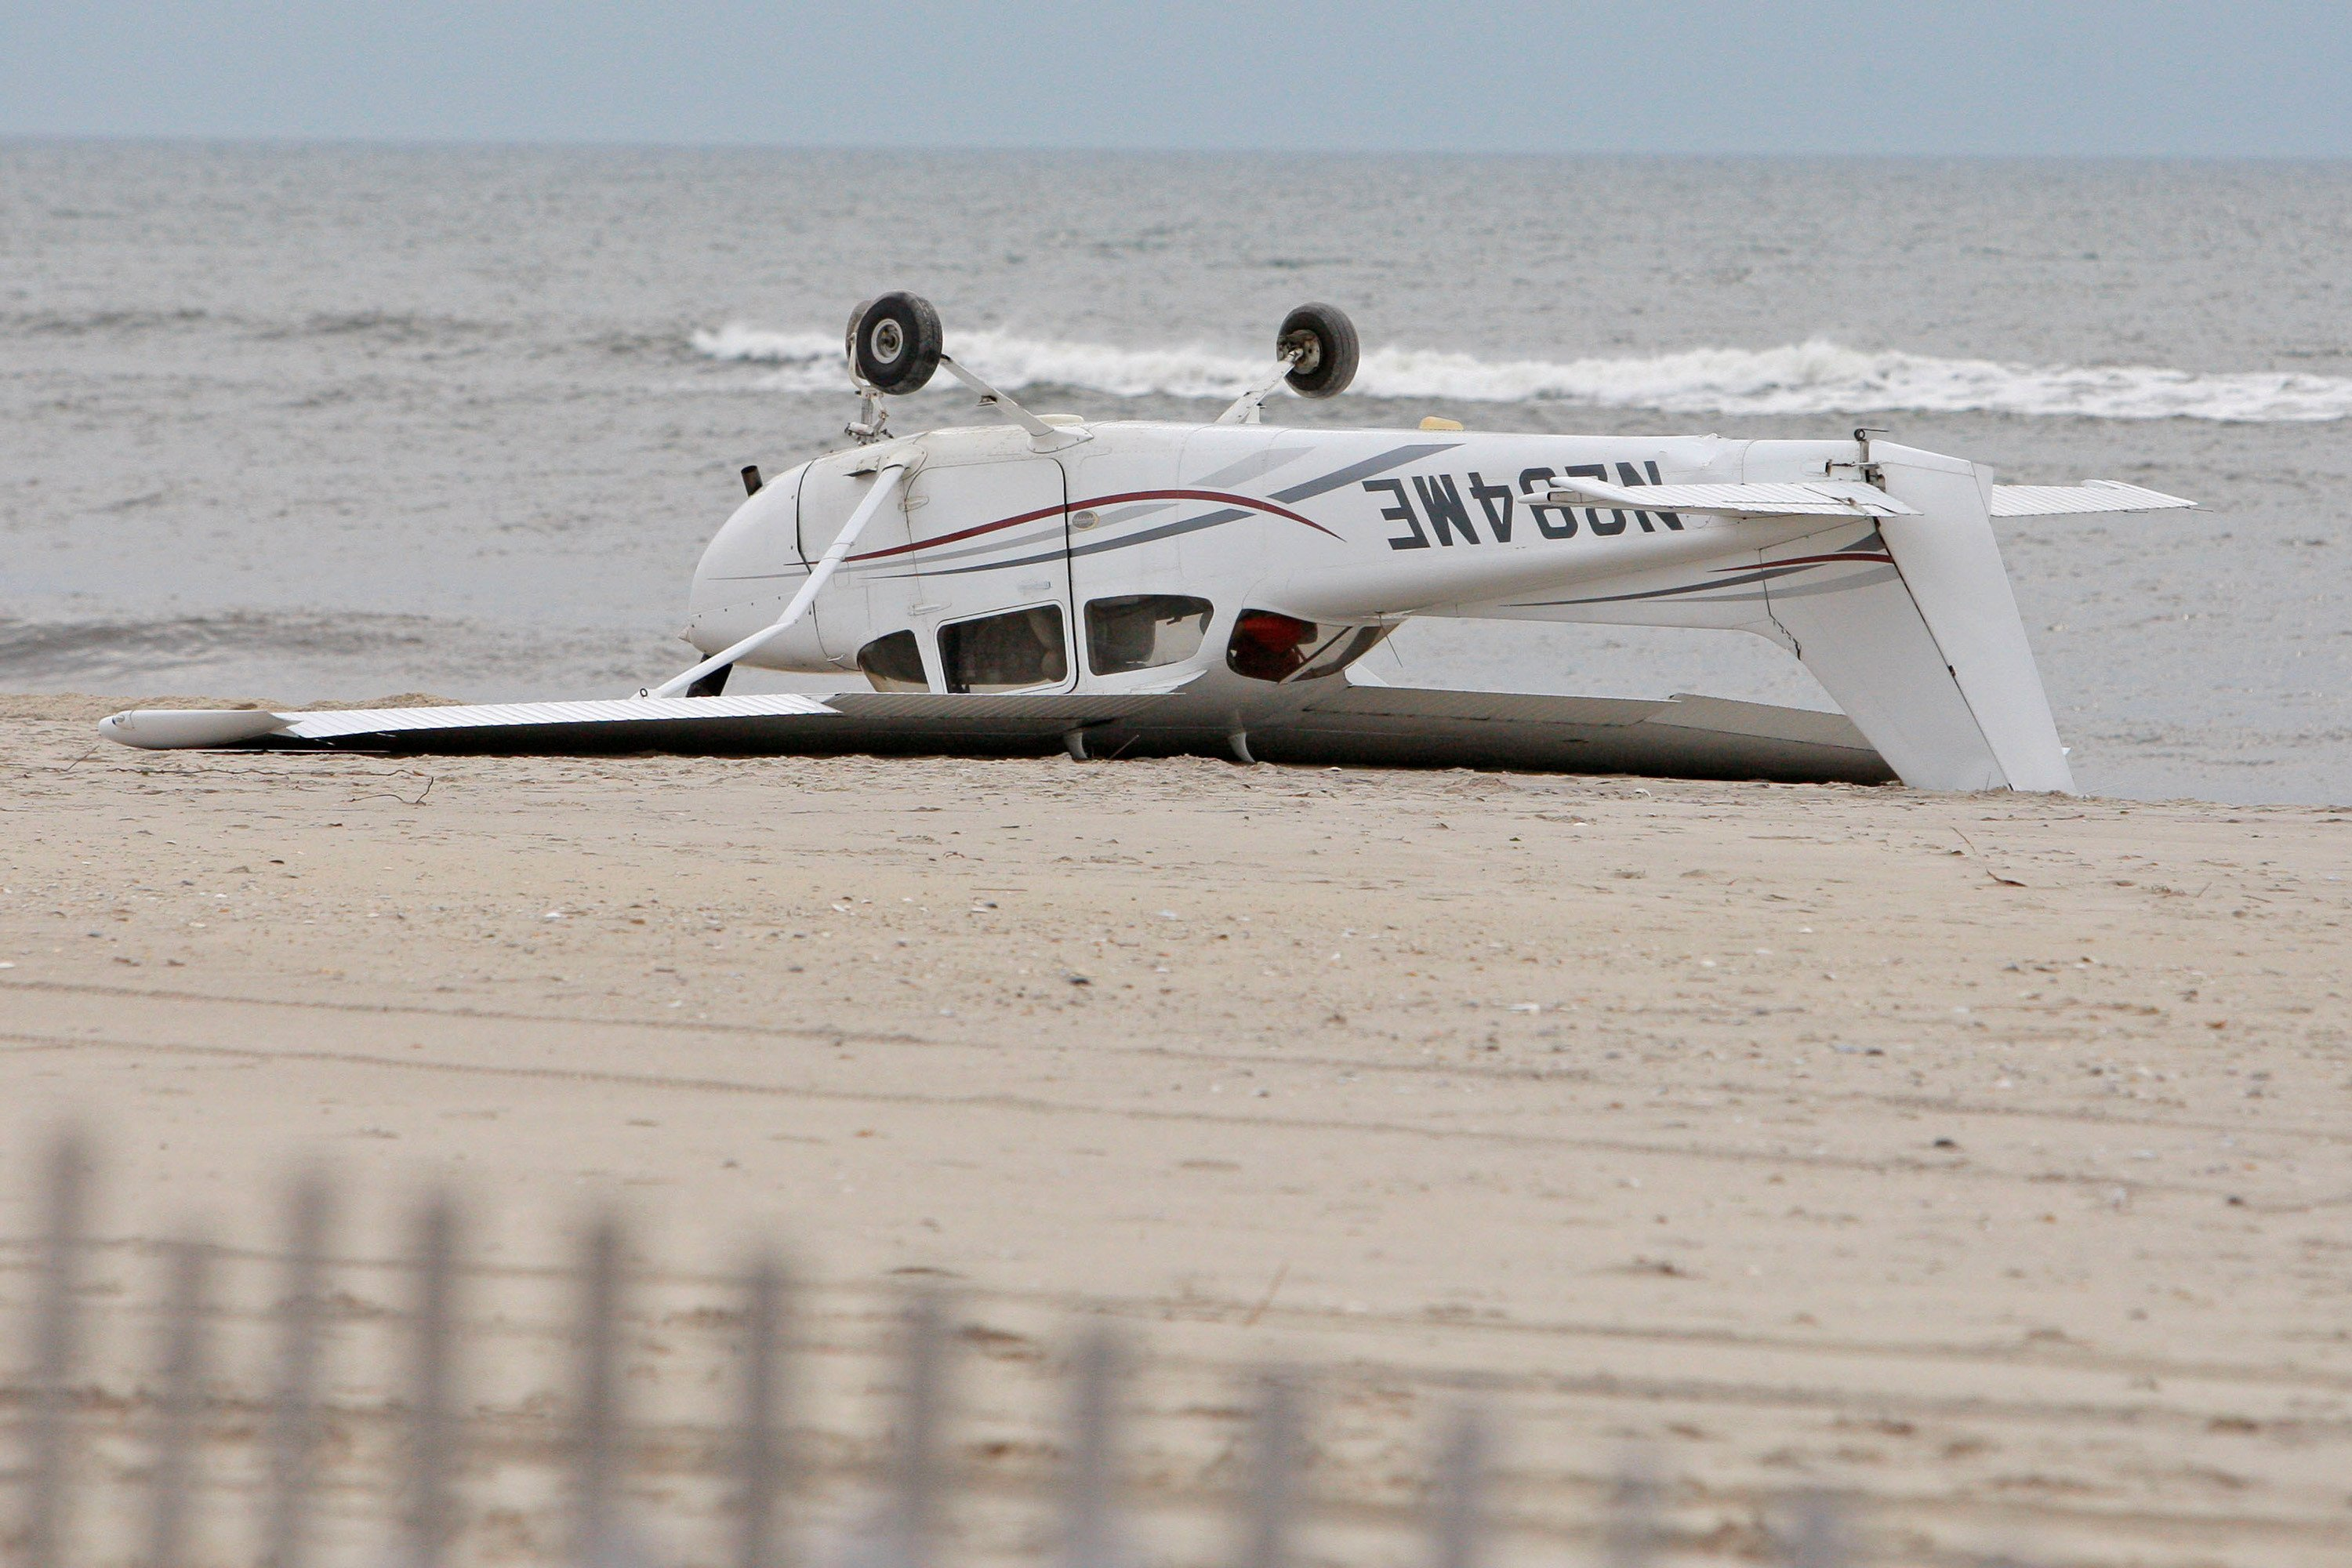 Plane flown by teen makes emergency landing on beach